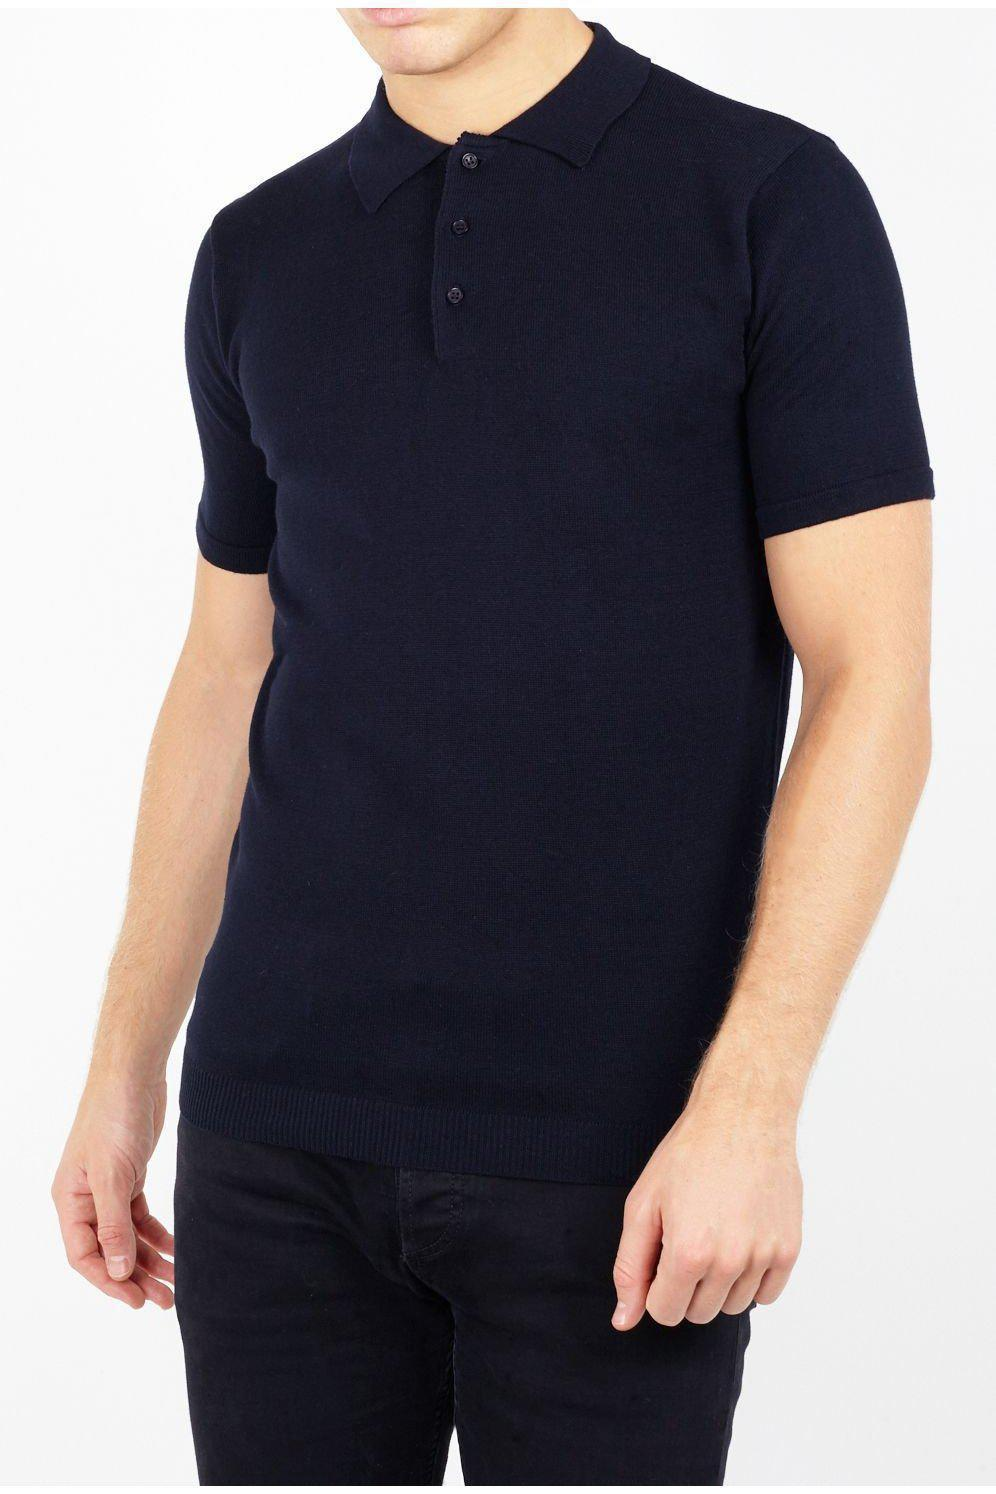 Polos - Lightweight Knitted Polo Short Sleeve Navy